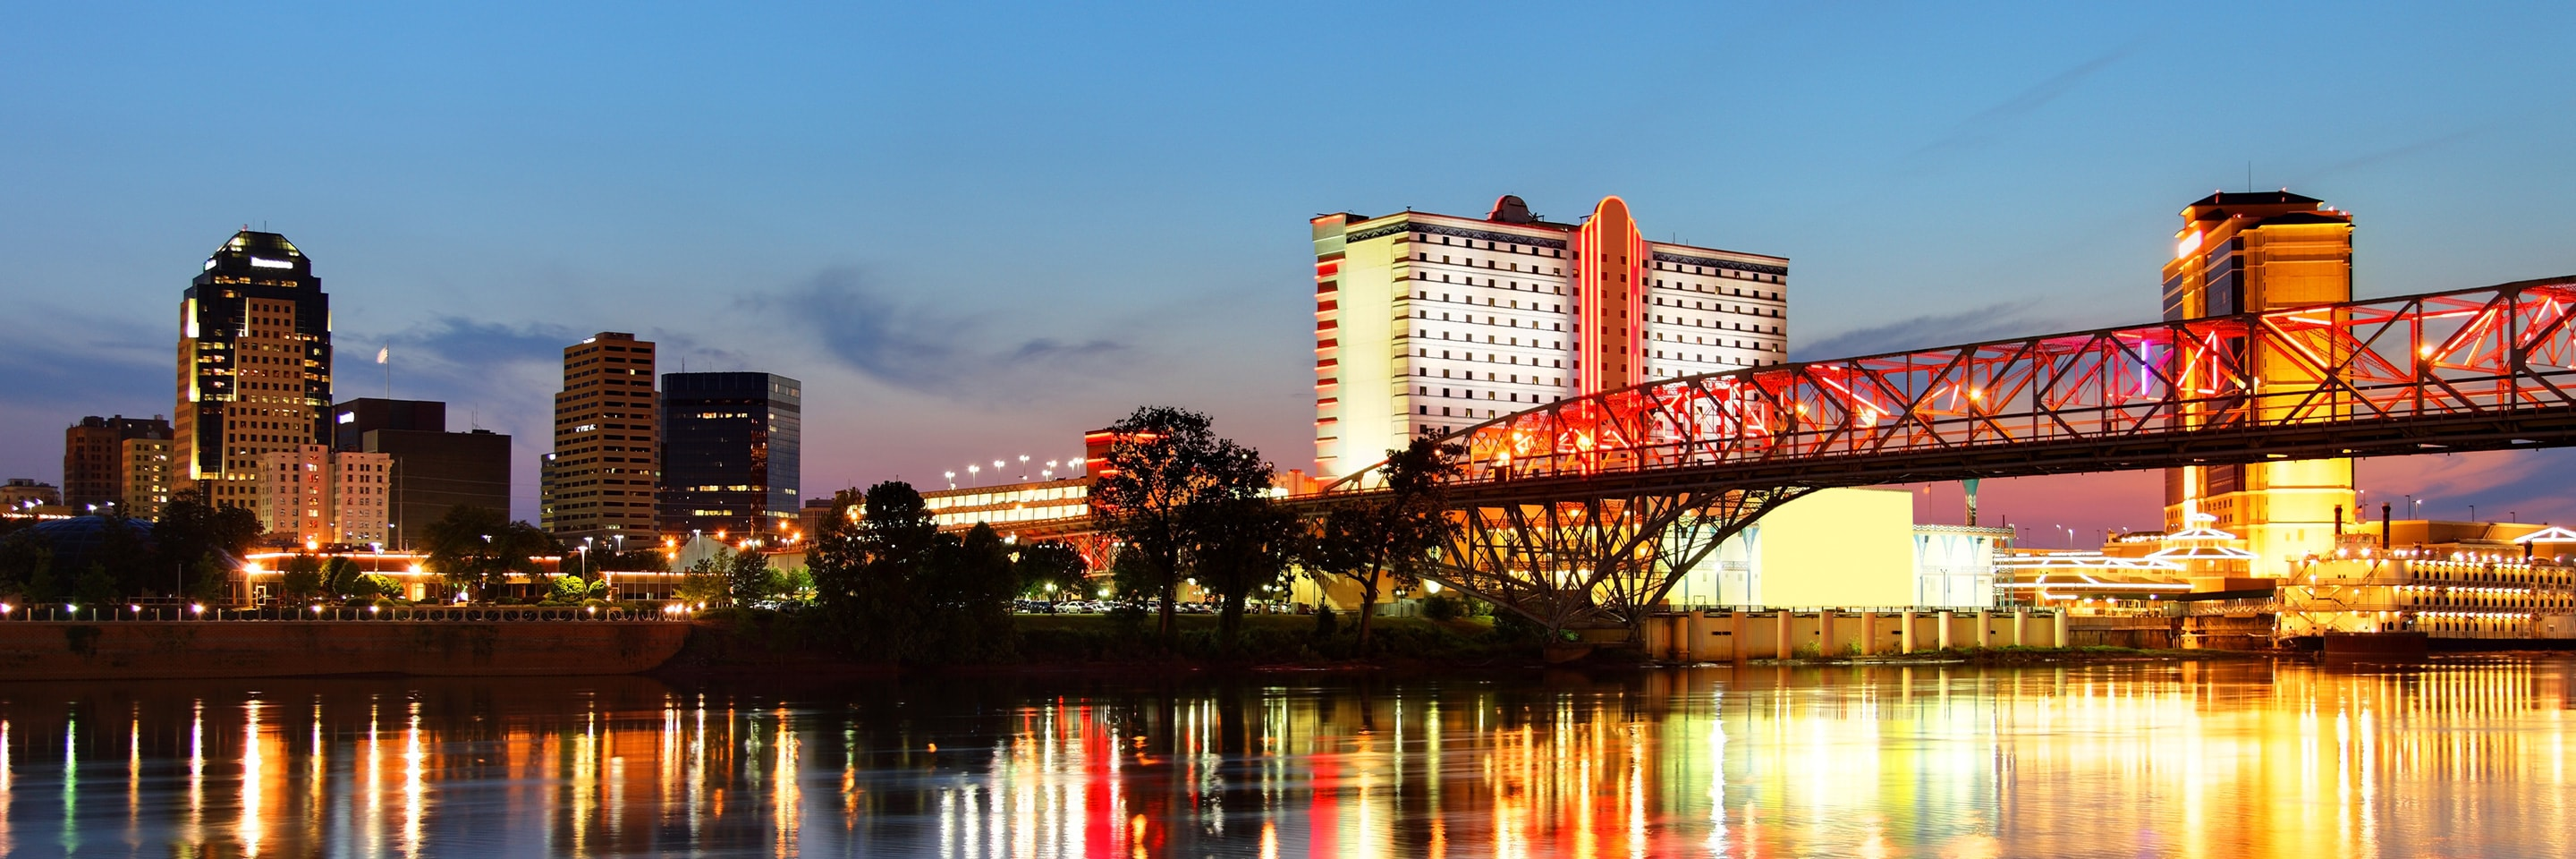 Hotels in Shreveport